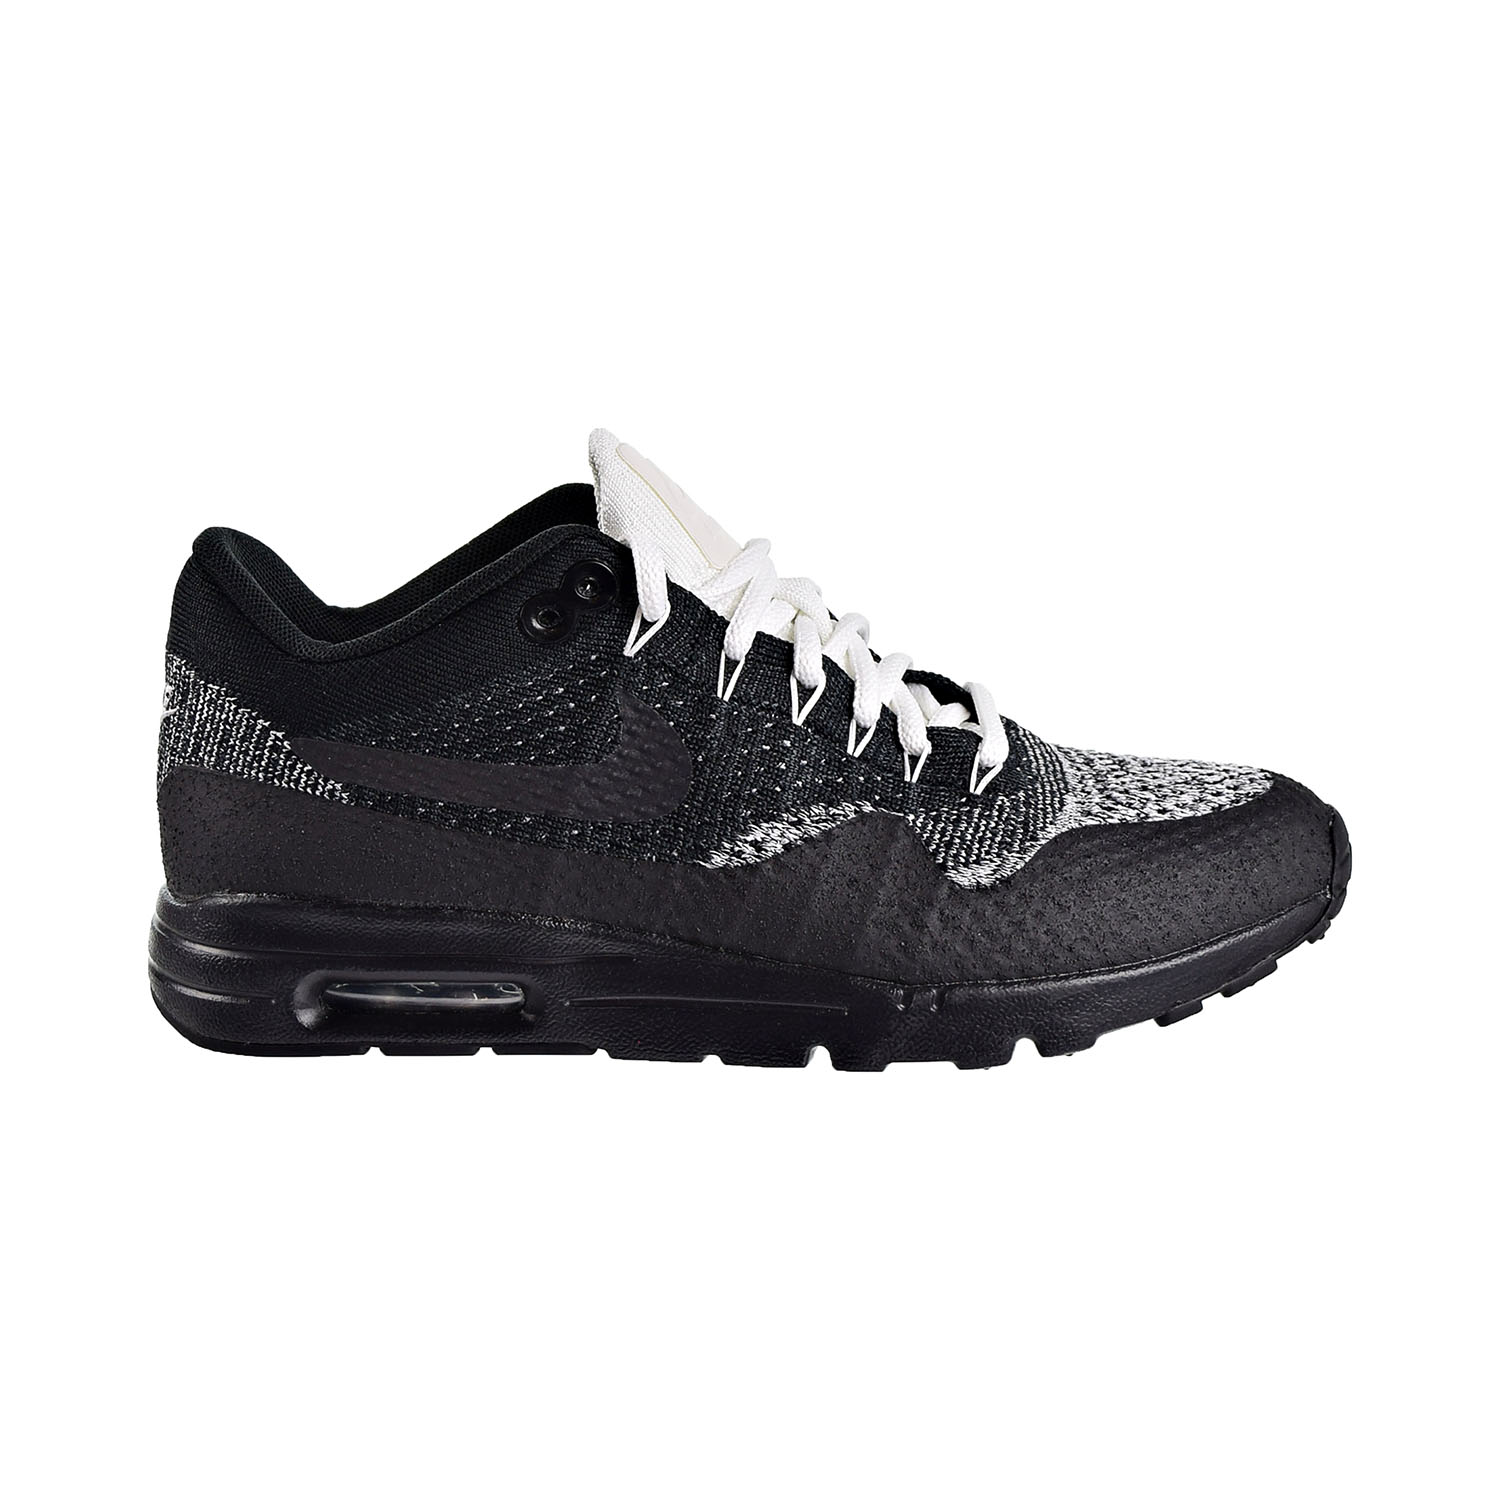 Details about Nike Air Max 1 Ultra Flyknit Womens Shoes Black Anthracite White 859517 001